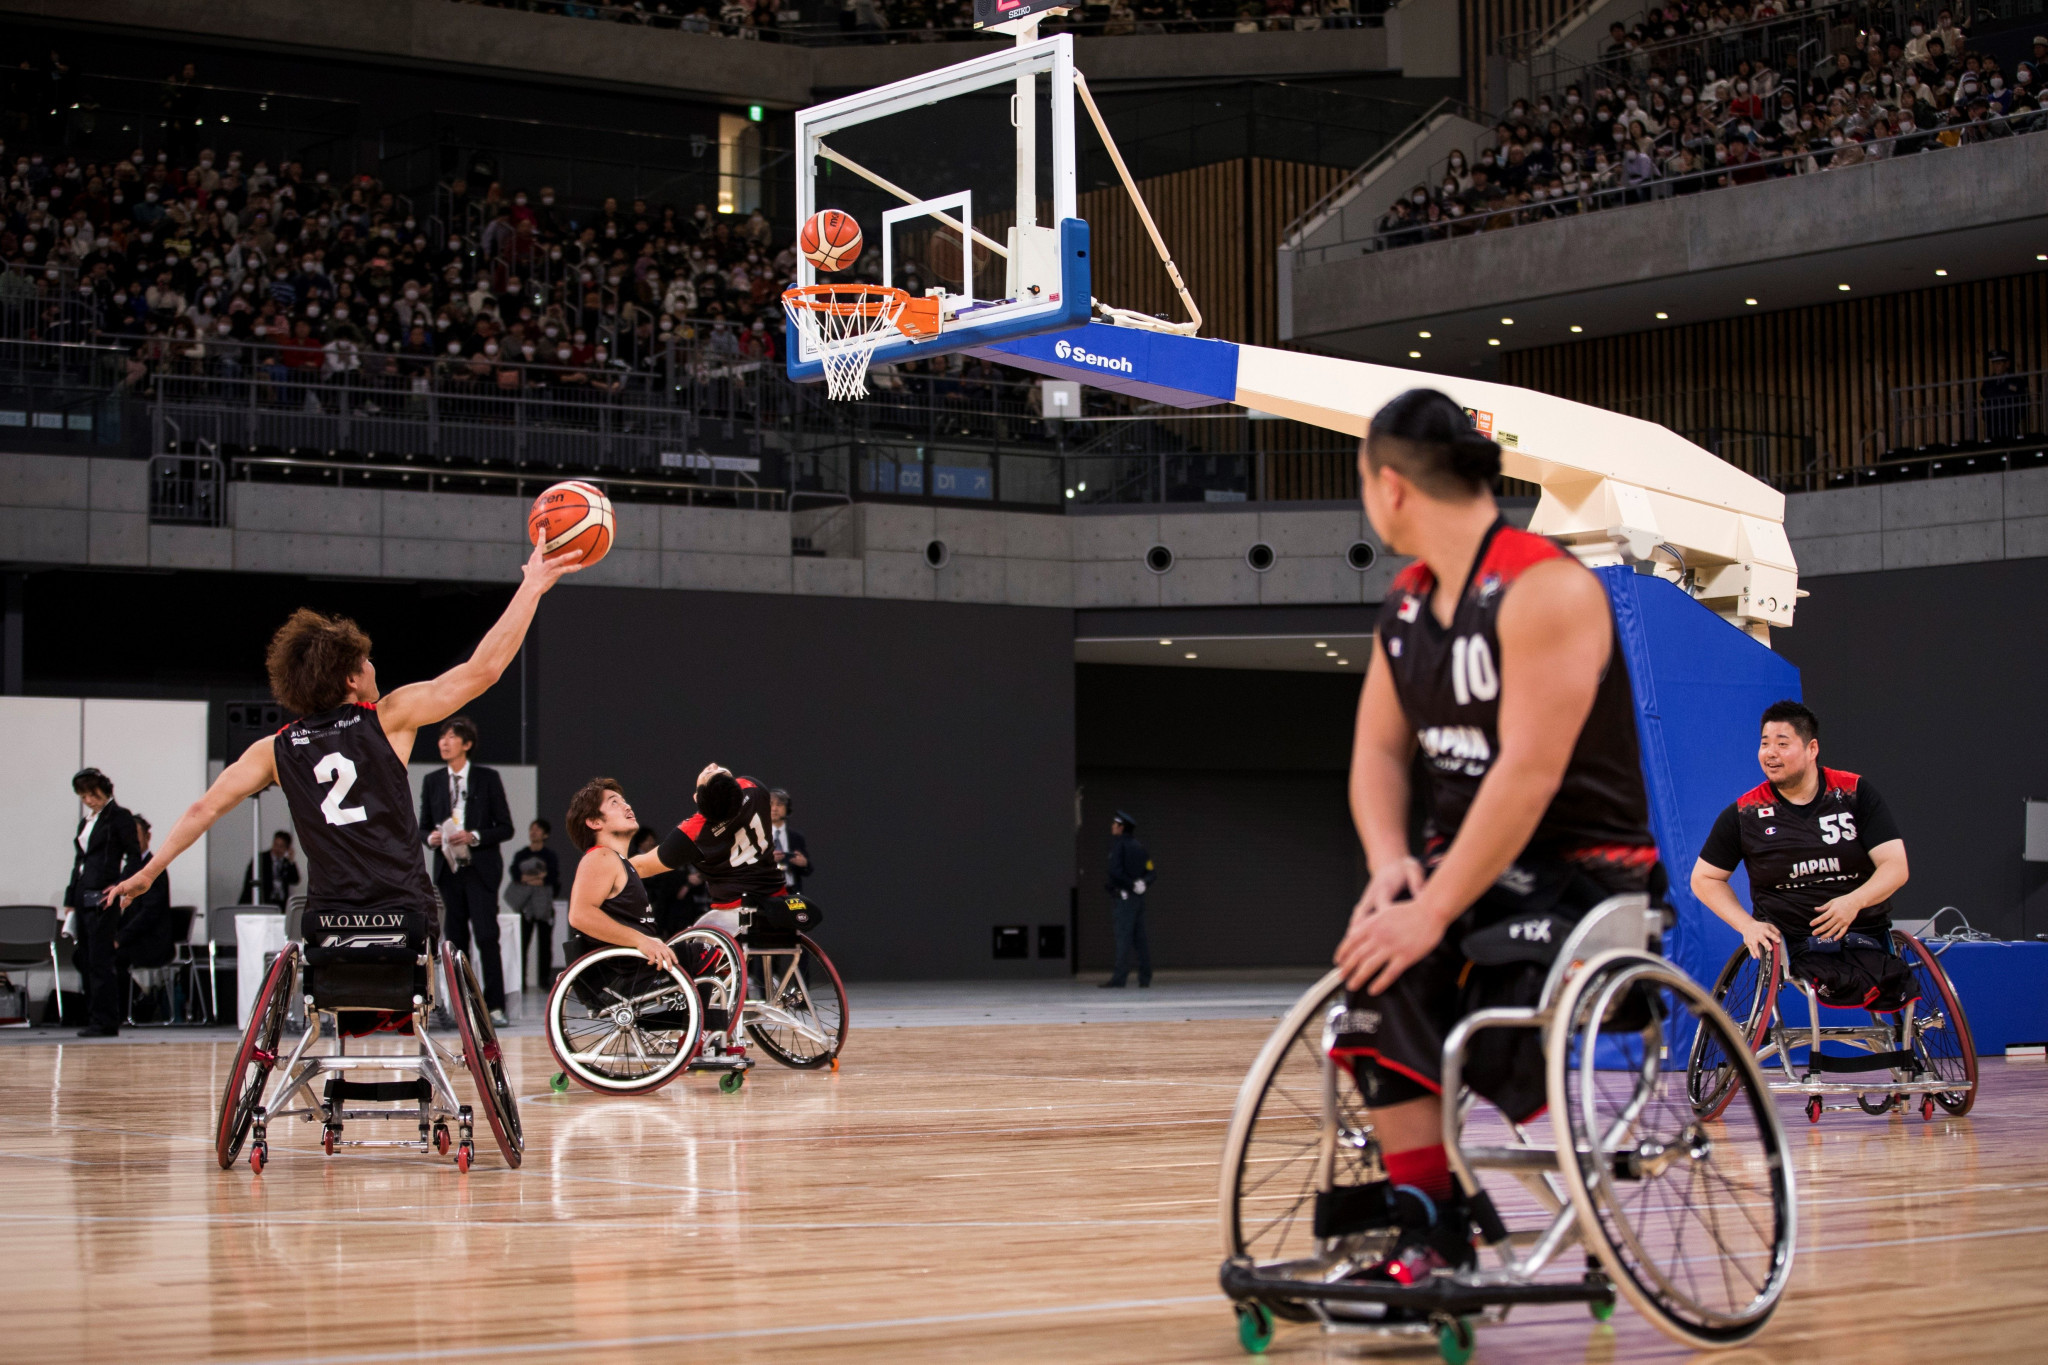 The IWBF are seeking to comply with the IPC Athlete Classification Code ©Getty Images